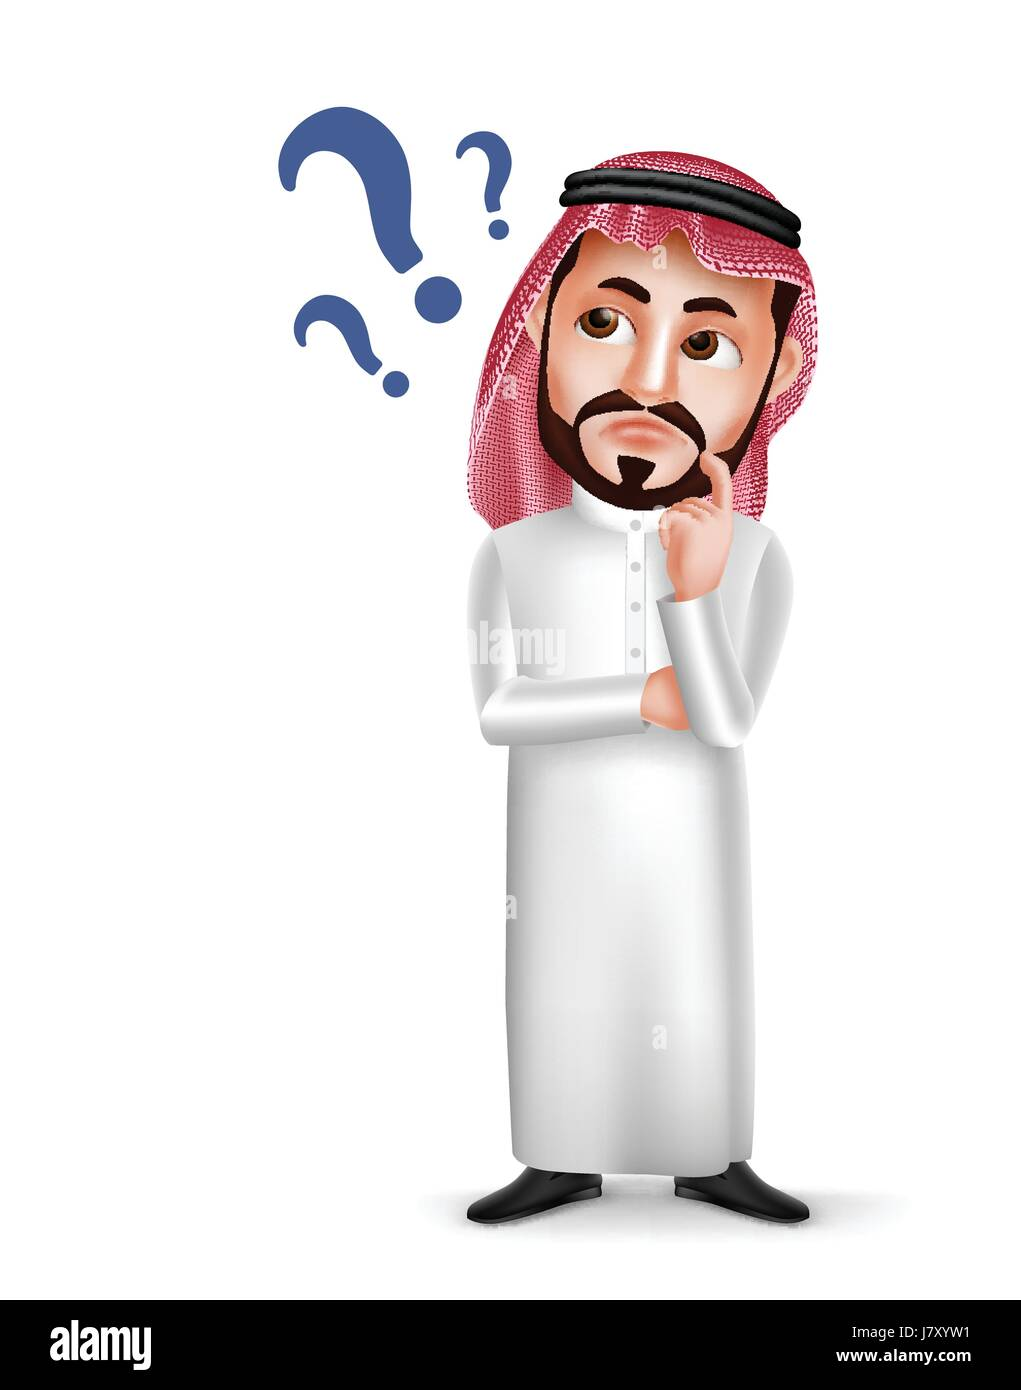 Saudi Arab man vector character wearing thobe with confused or thinking facial expression isolated in white background. - Stock Image